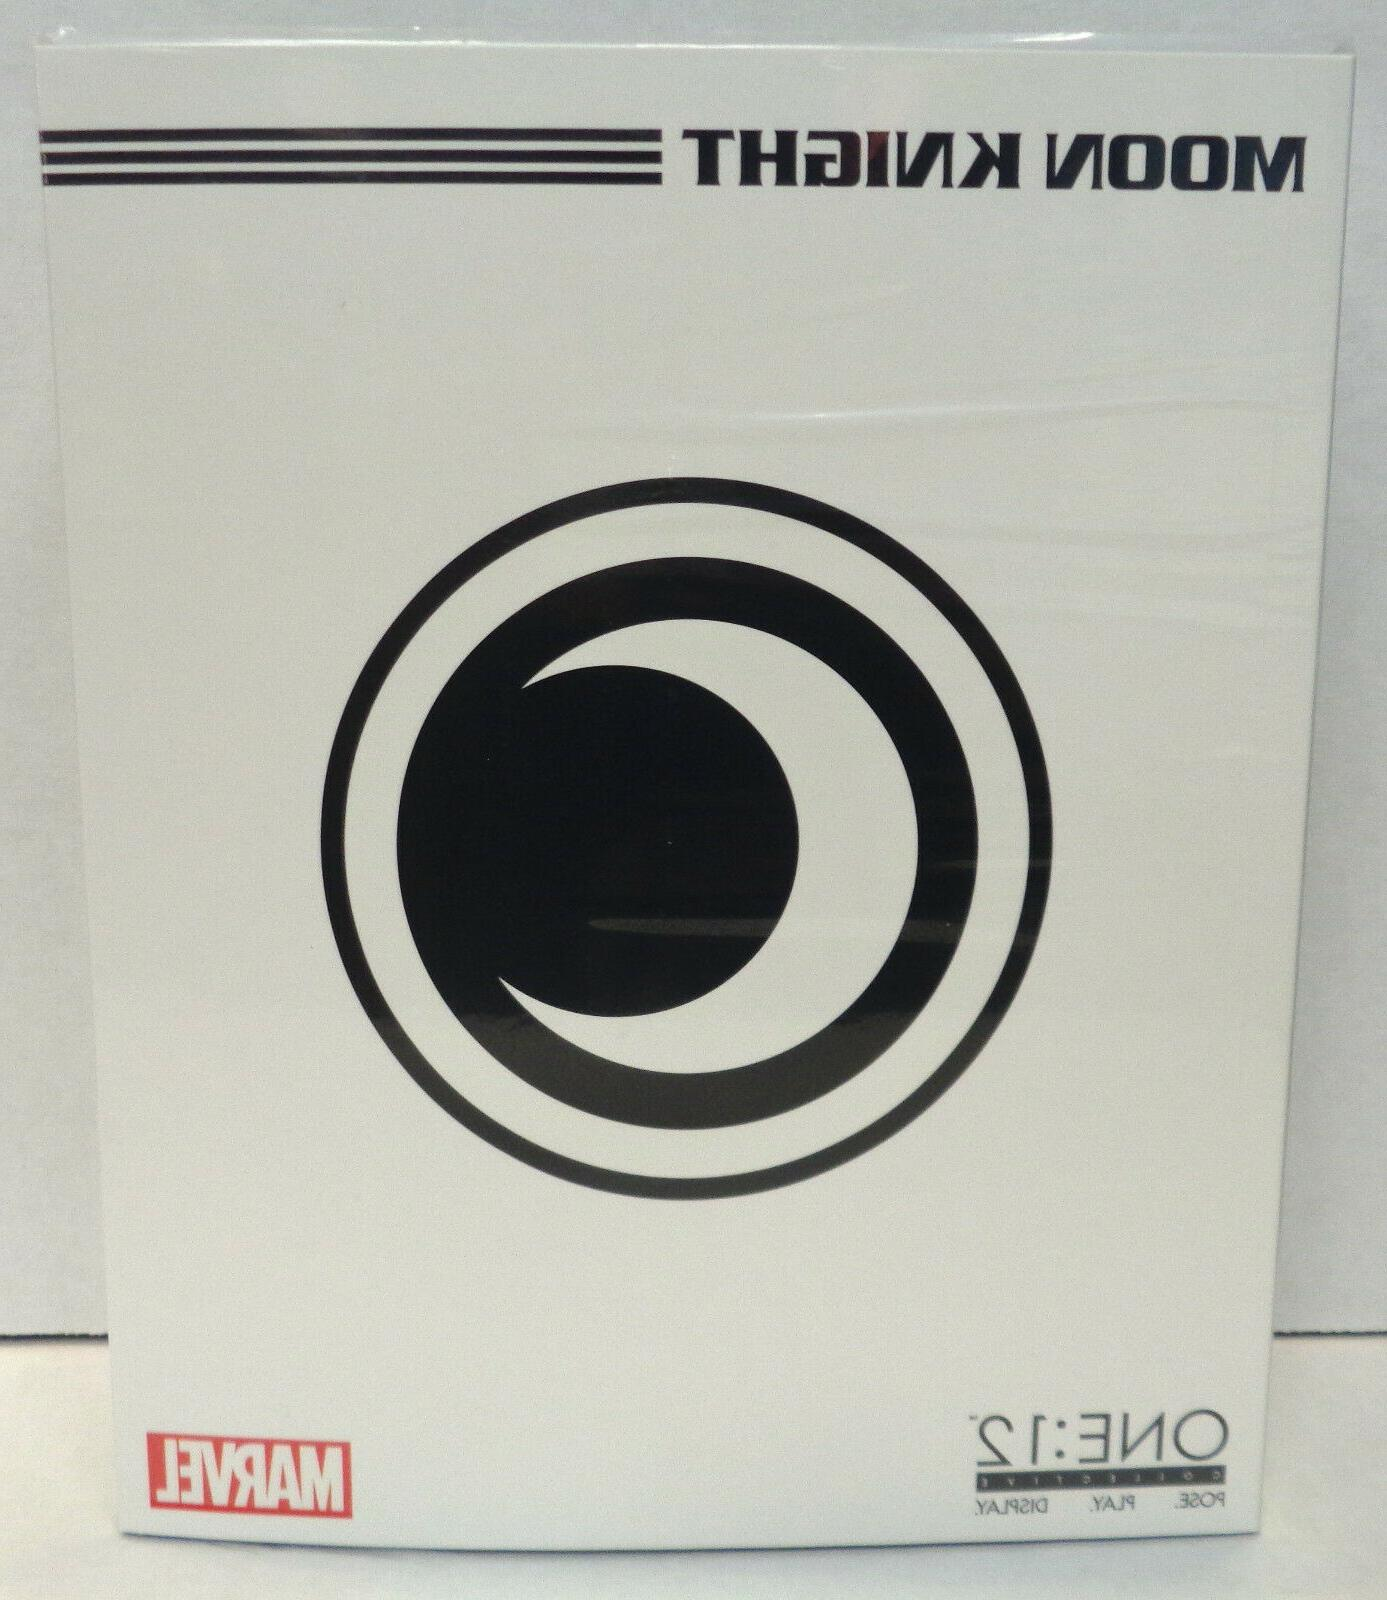 moon knight one 12 collective action figure